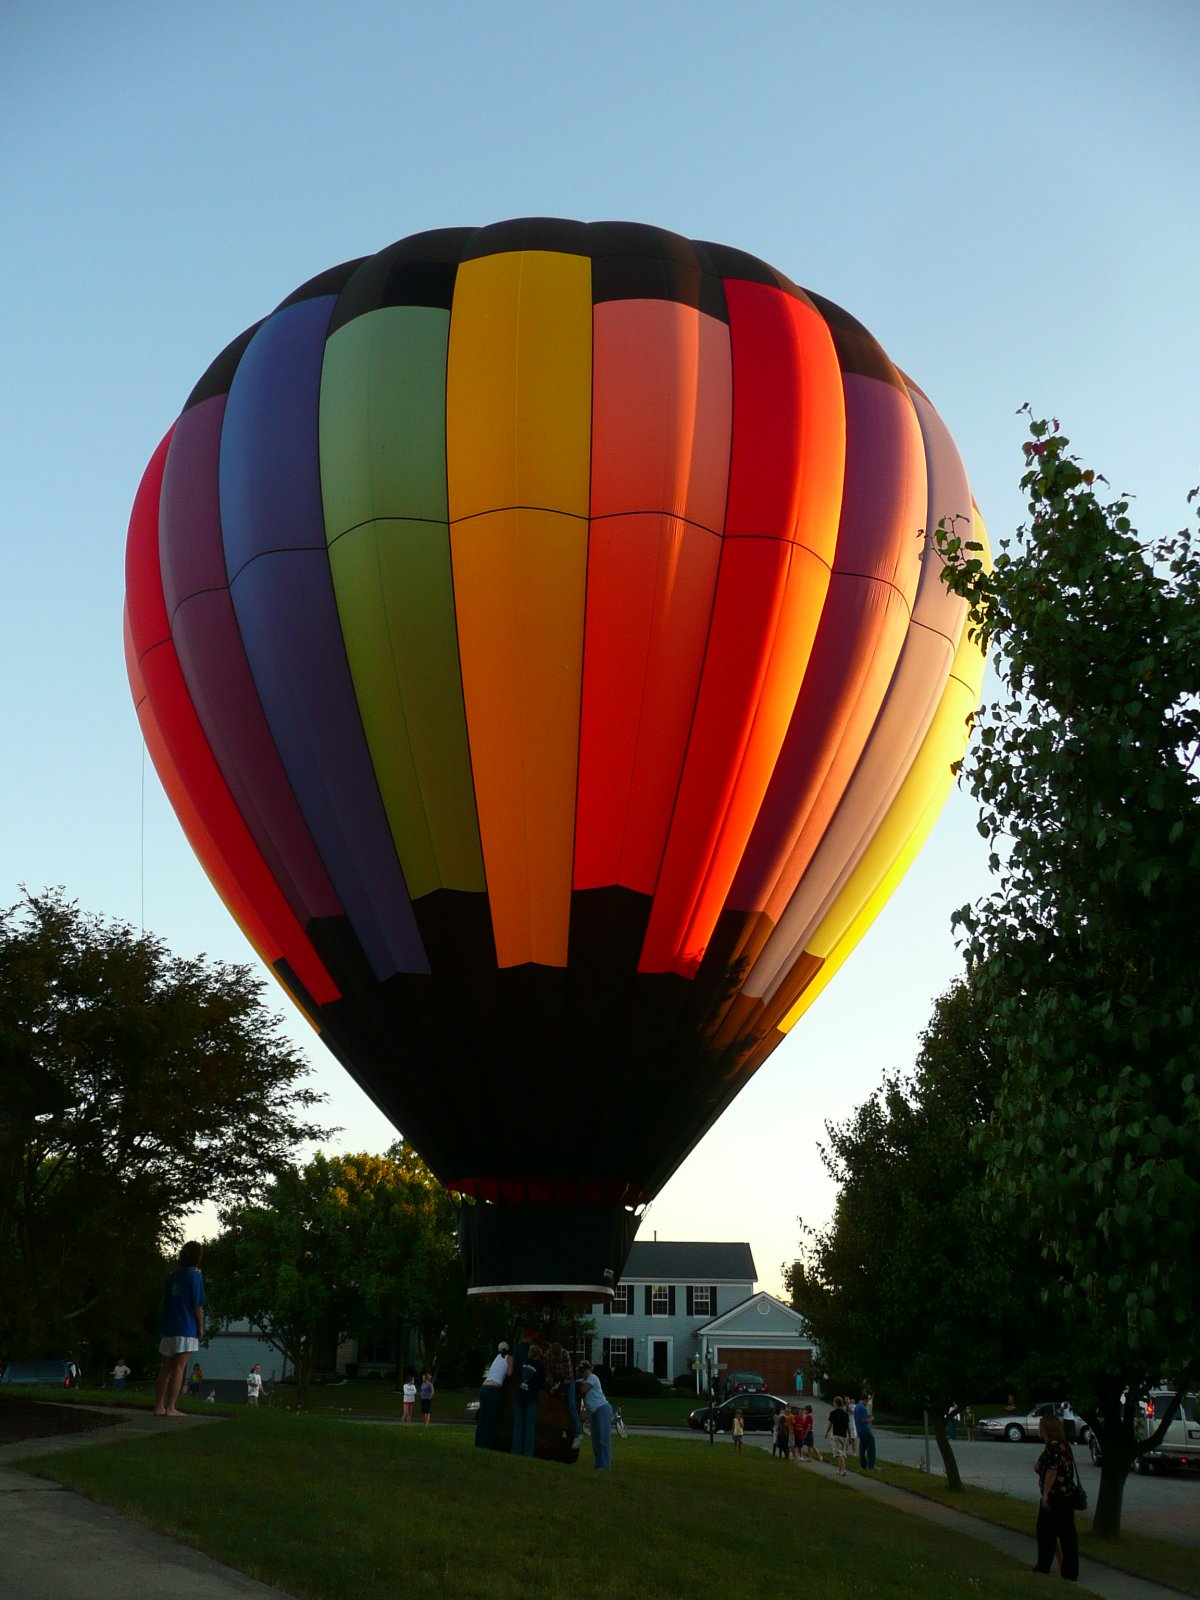 Click image for larger version  Name:balloon 004.jpg Views:40 Size:254.2 KB ID:7520